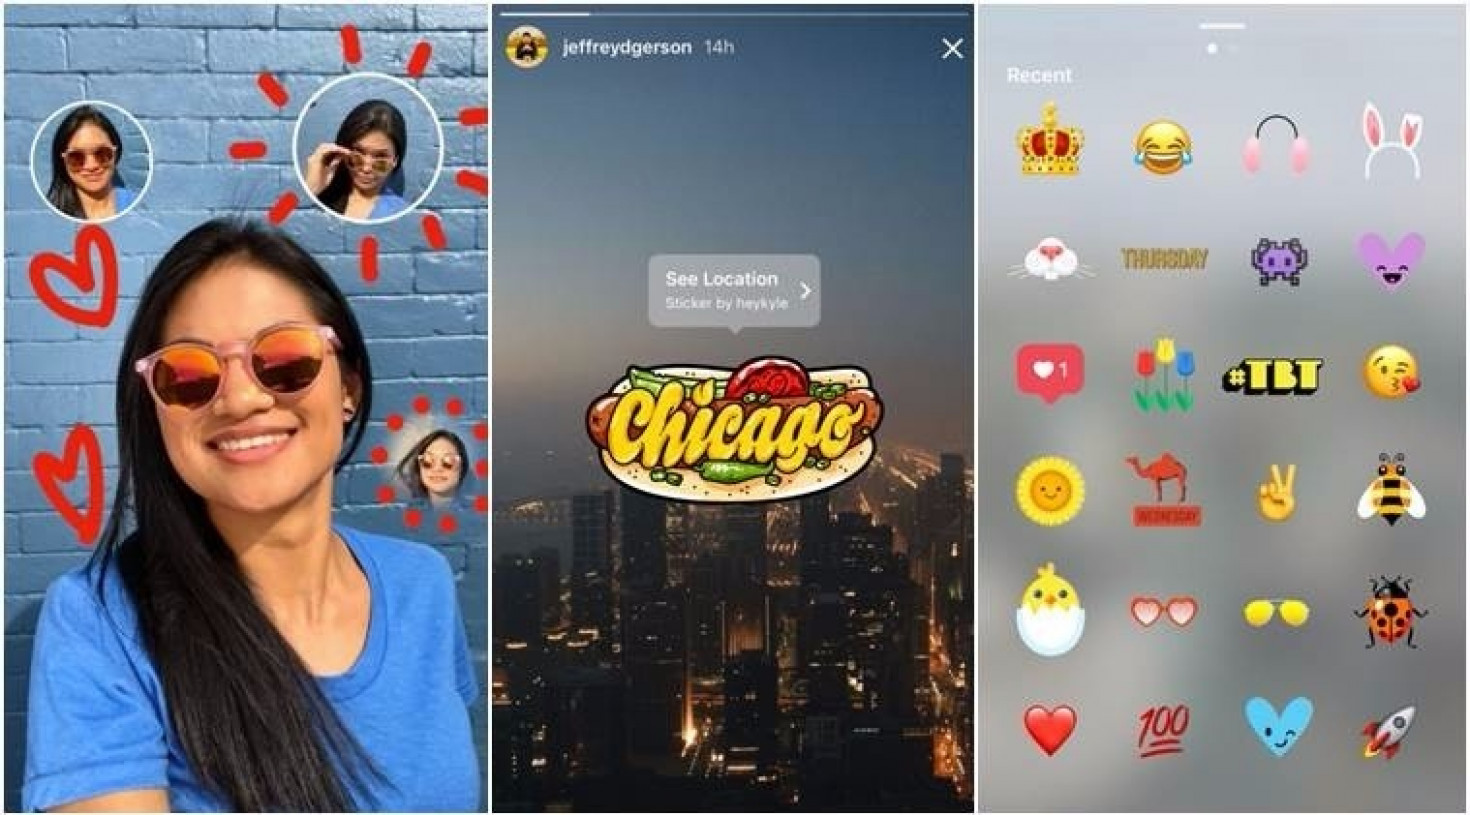 200 million people are now using Instagram Stories a day - plus they release some new updates